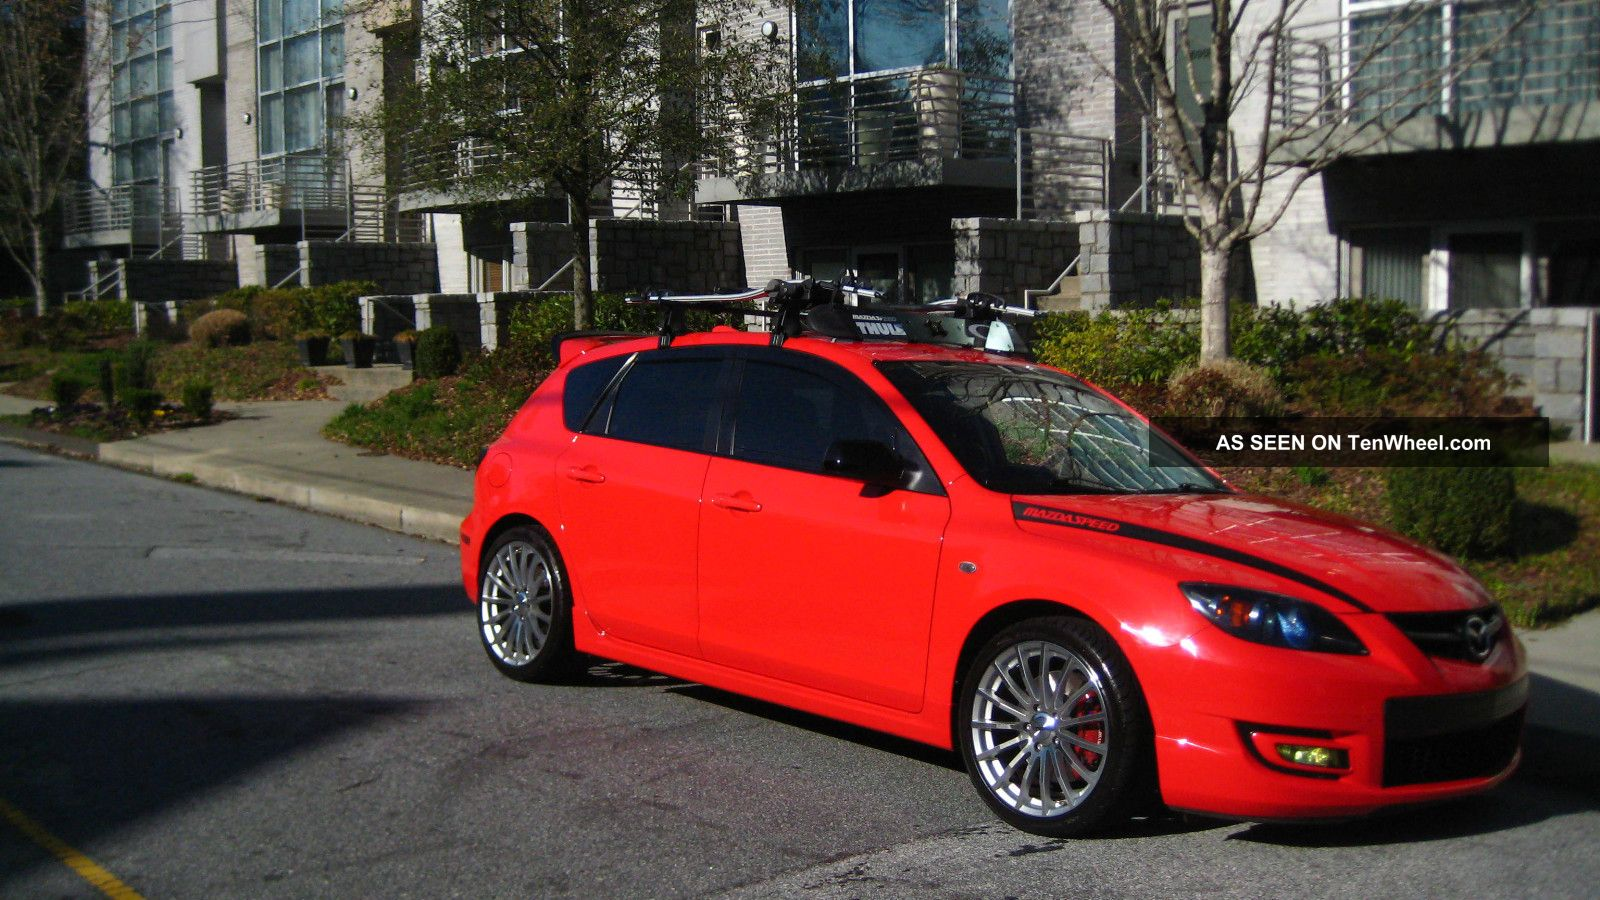 2007 mazda 3 mazdaspeed hatchback 4 door 2 3l. Black Bedroom Furniture Sets. Home Design Ideas